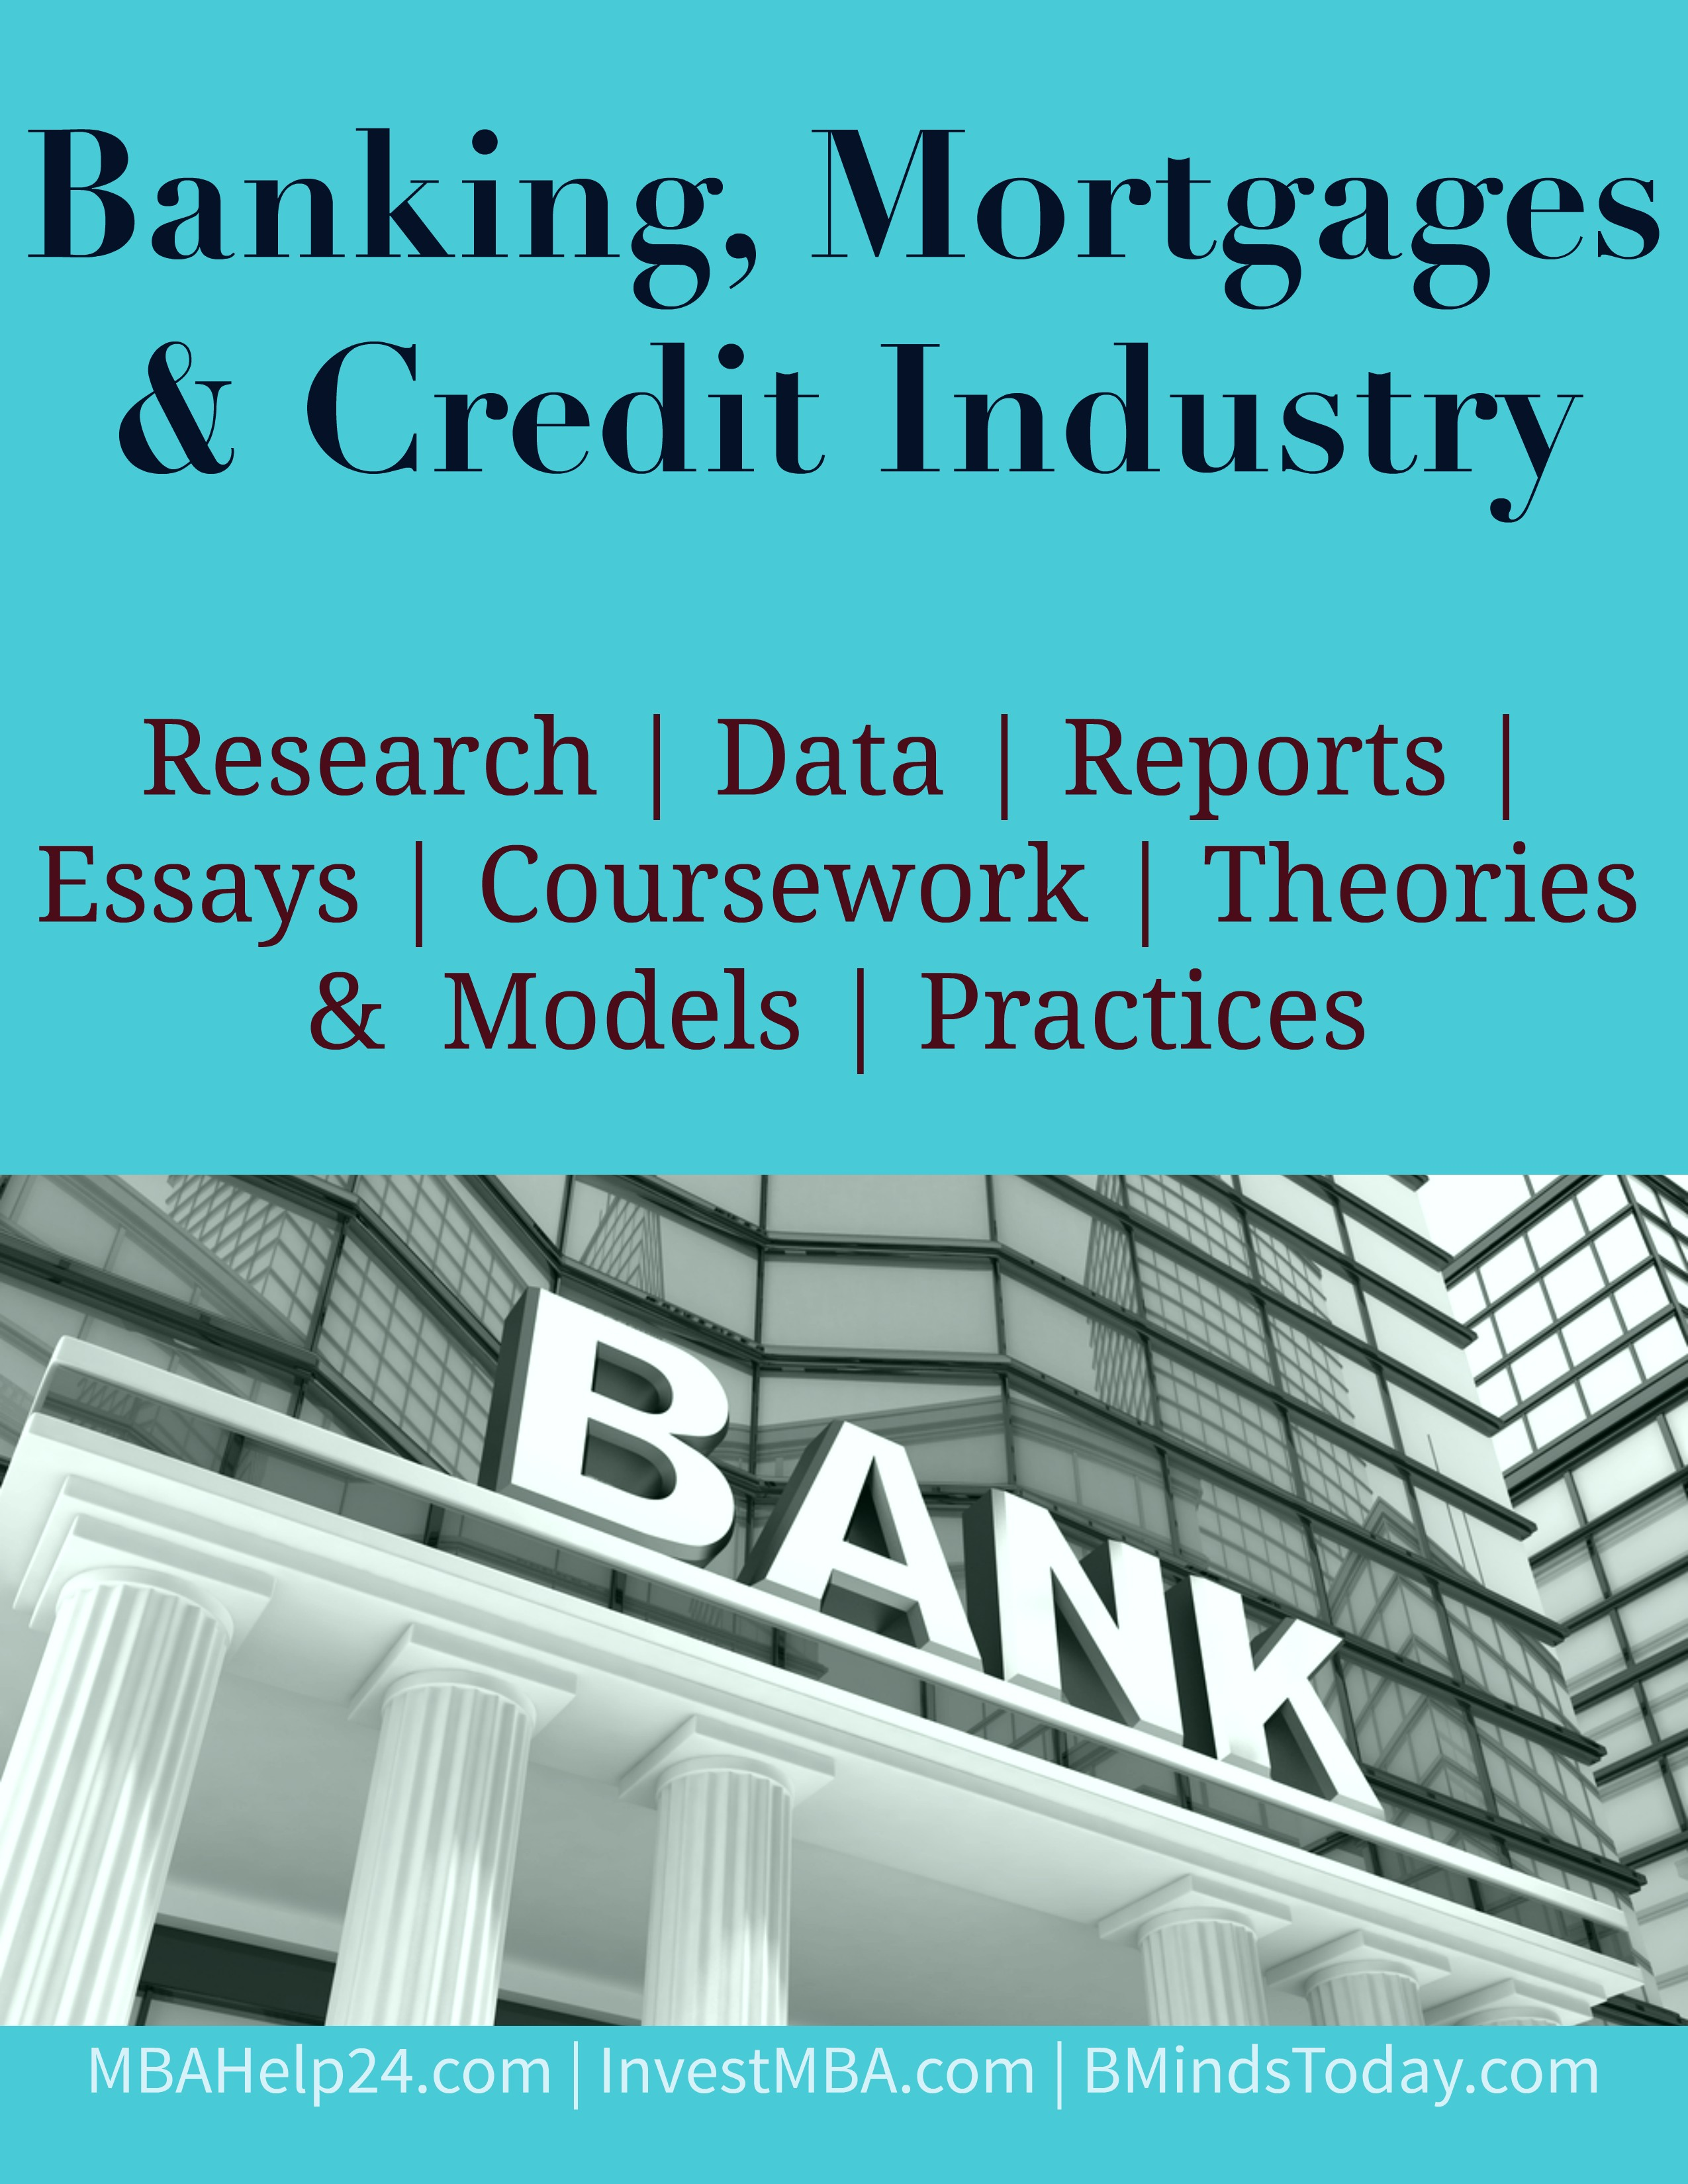 Banking, Mortgages and Credit Industry- MBA Banking